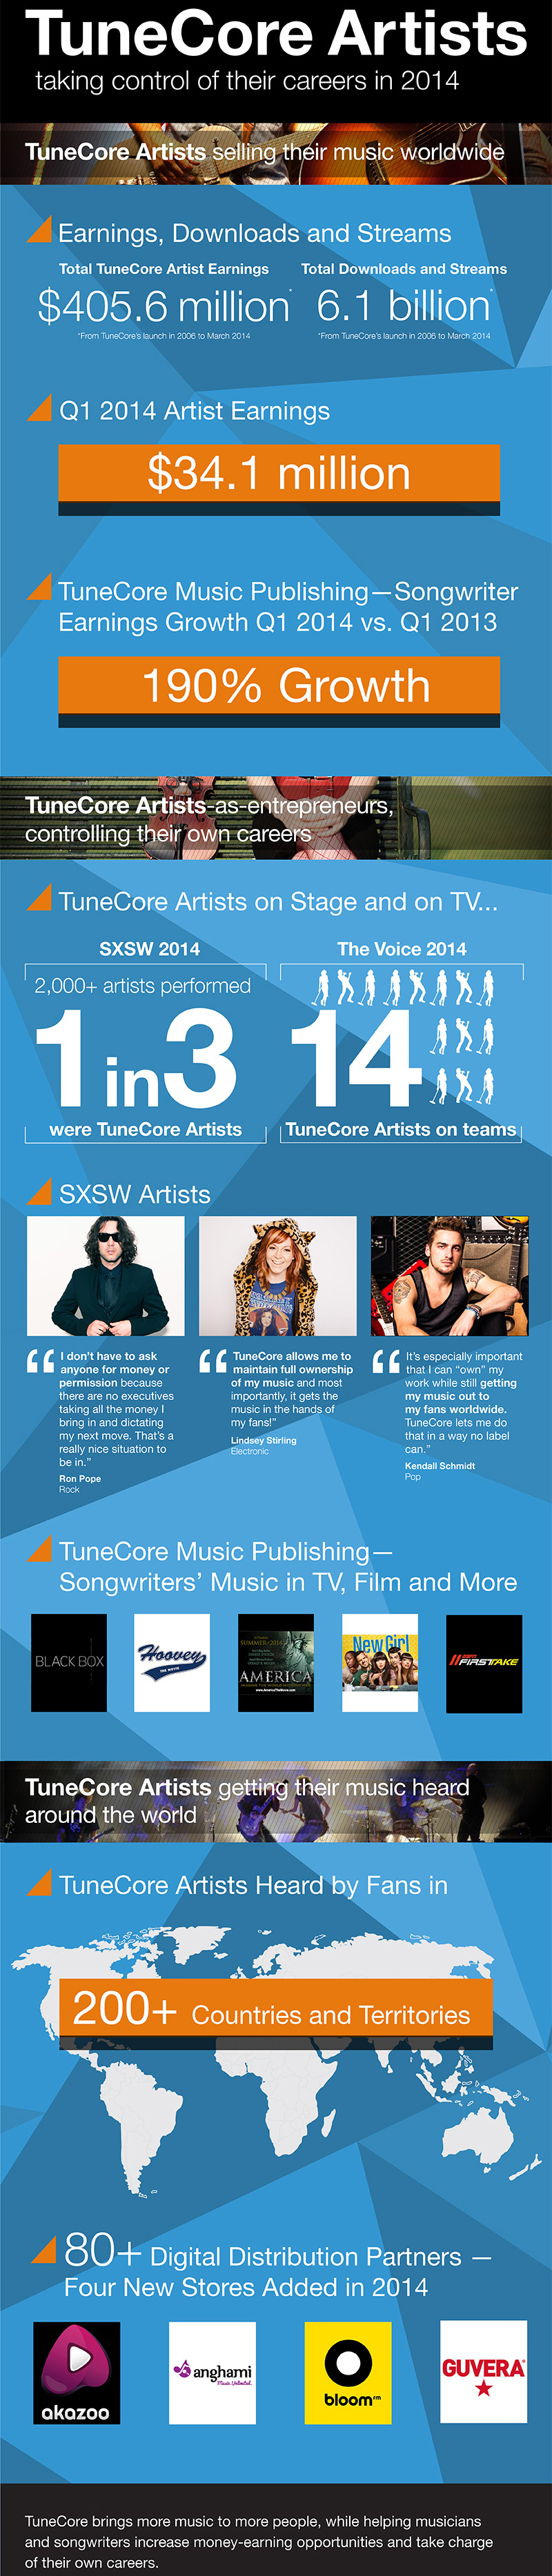 TuneCore Artists earned $34.1 million in revenue for Q1 2014.